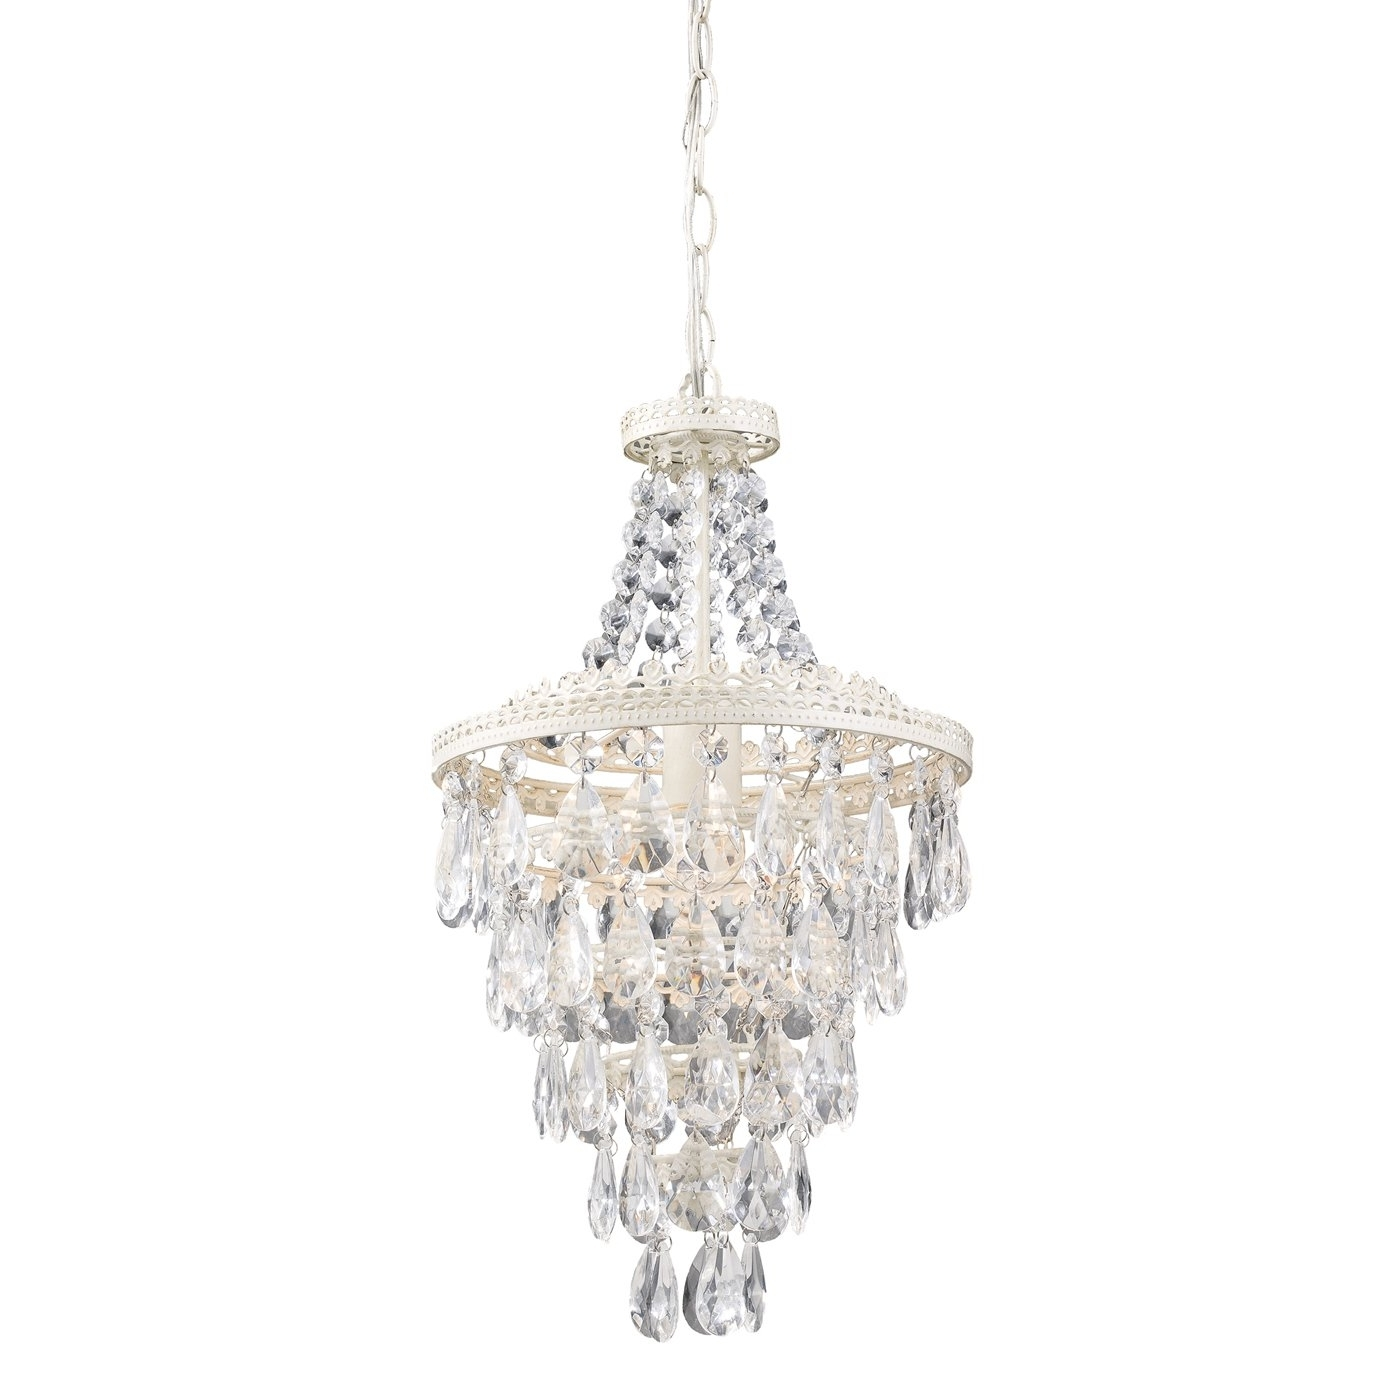 Chandeliers Design : Amazing Mini Crystal Chandelier Bathroom Regarding Latest Mini Crystal Chandeliers (View 2 of 15)